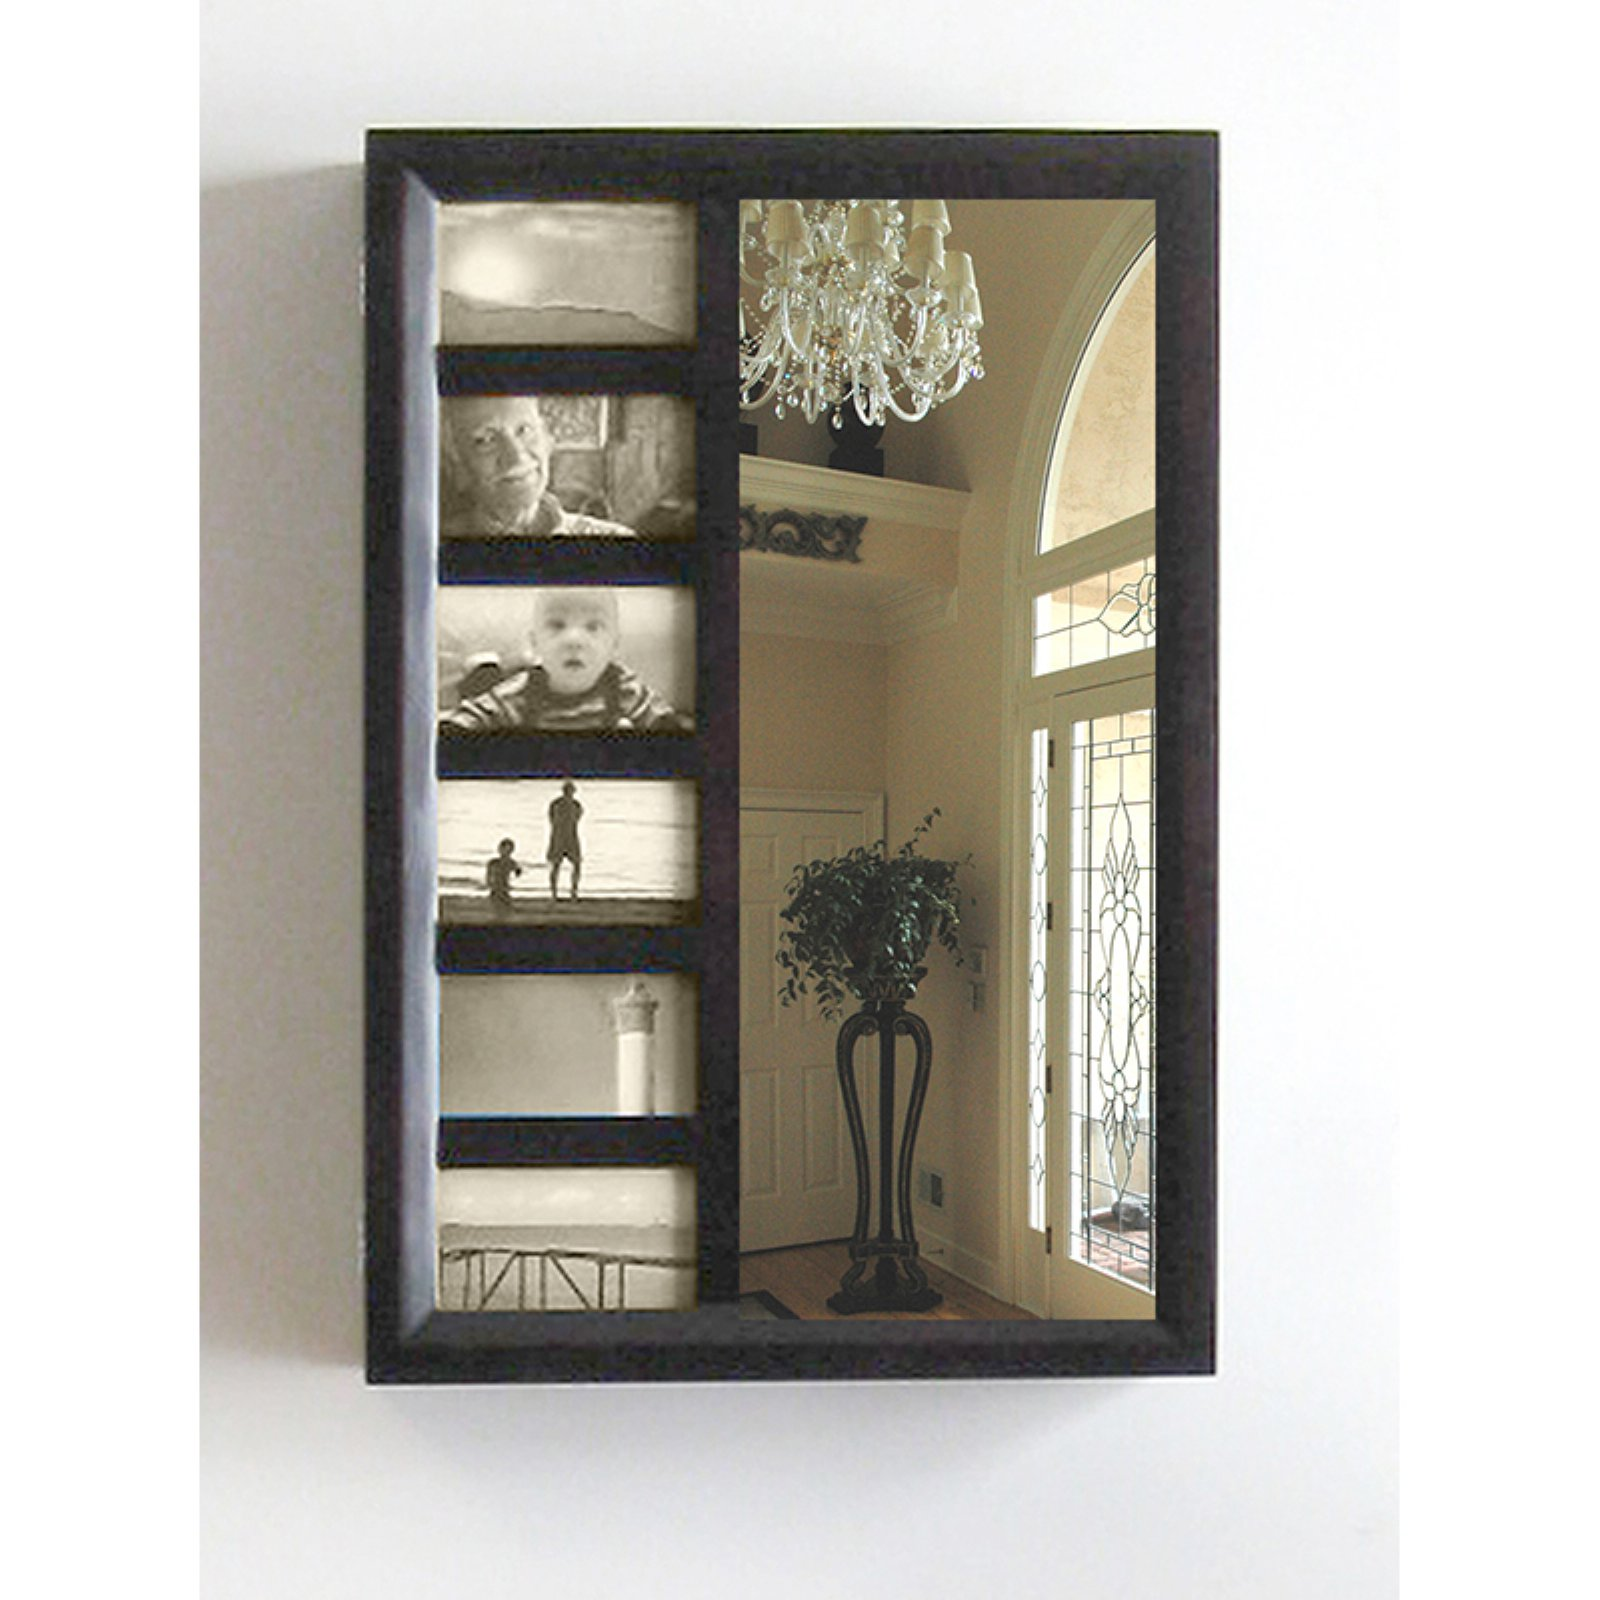 Bellissimo Wall Mount Jewelry Armoire - 16W x 23H in.